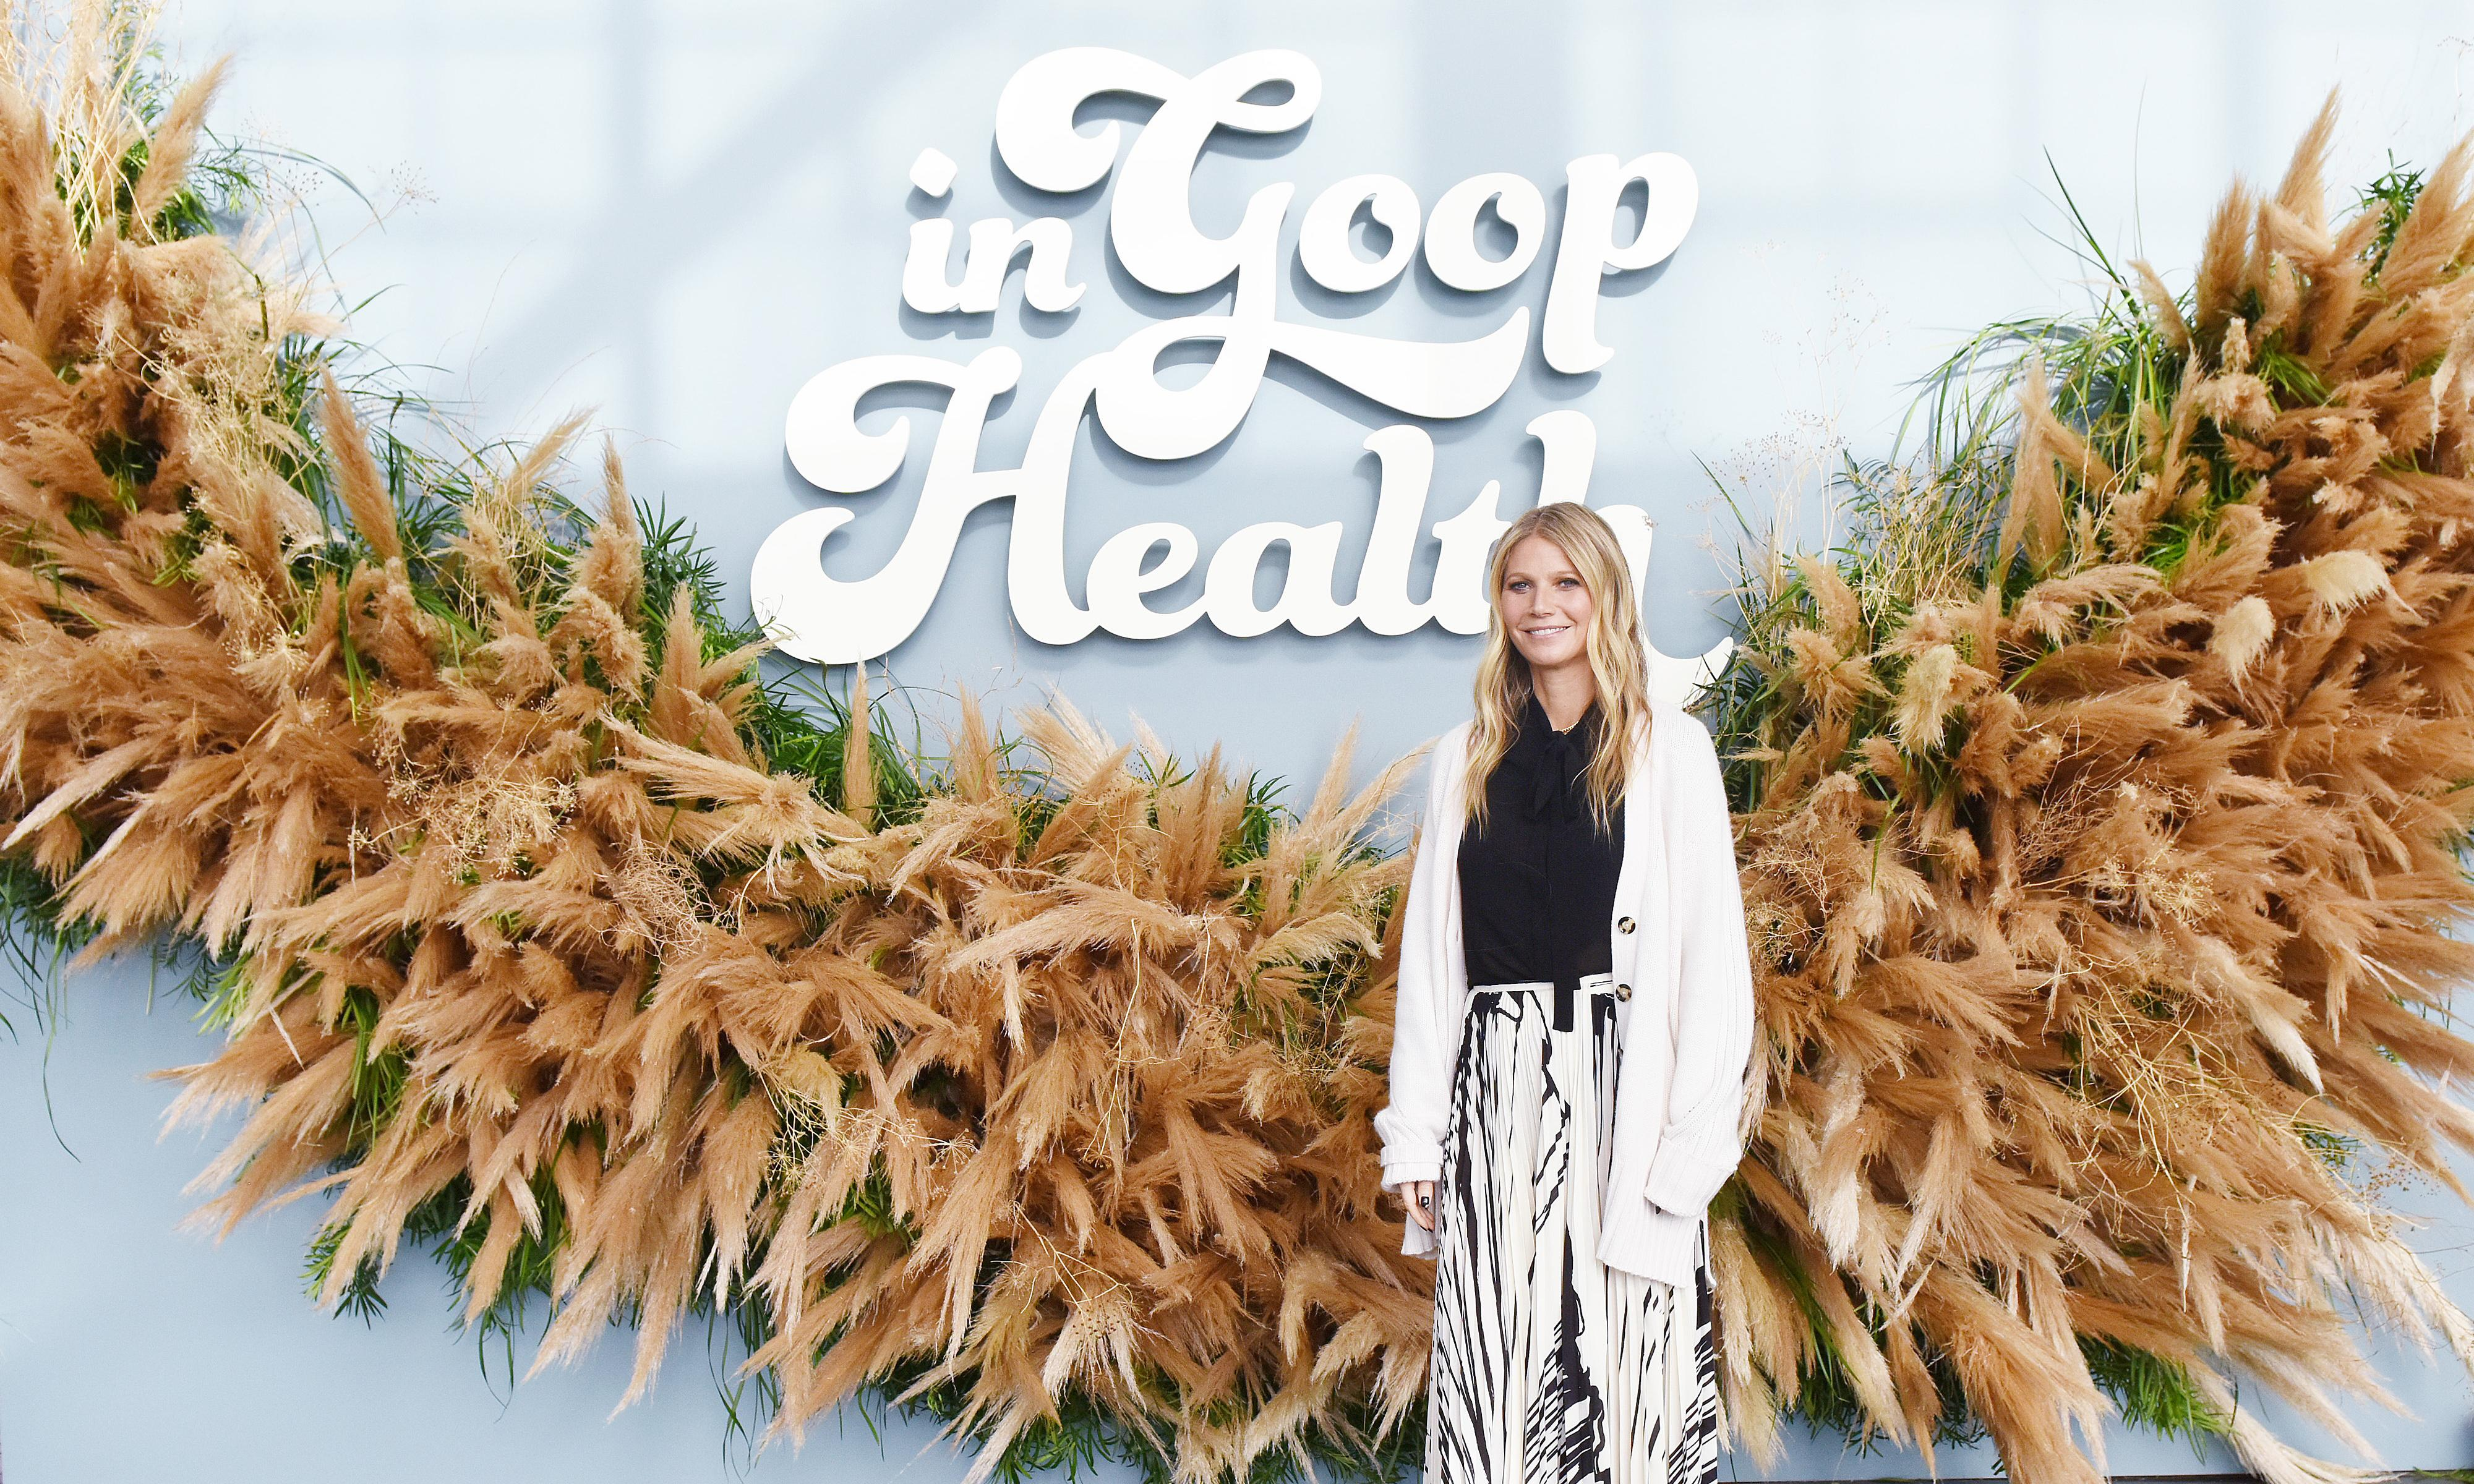 The Goop rush: why celebrities are racing to build wellness empires